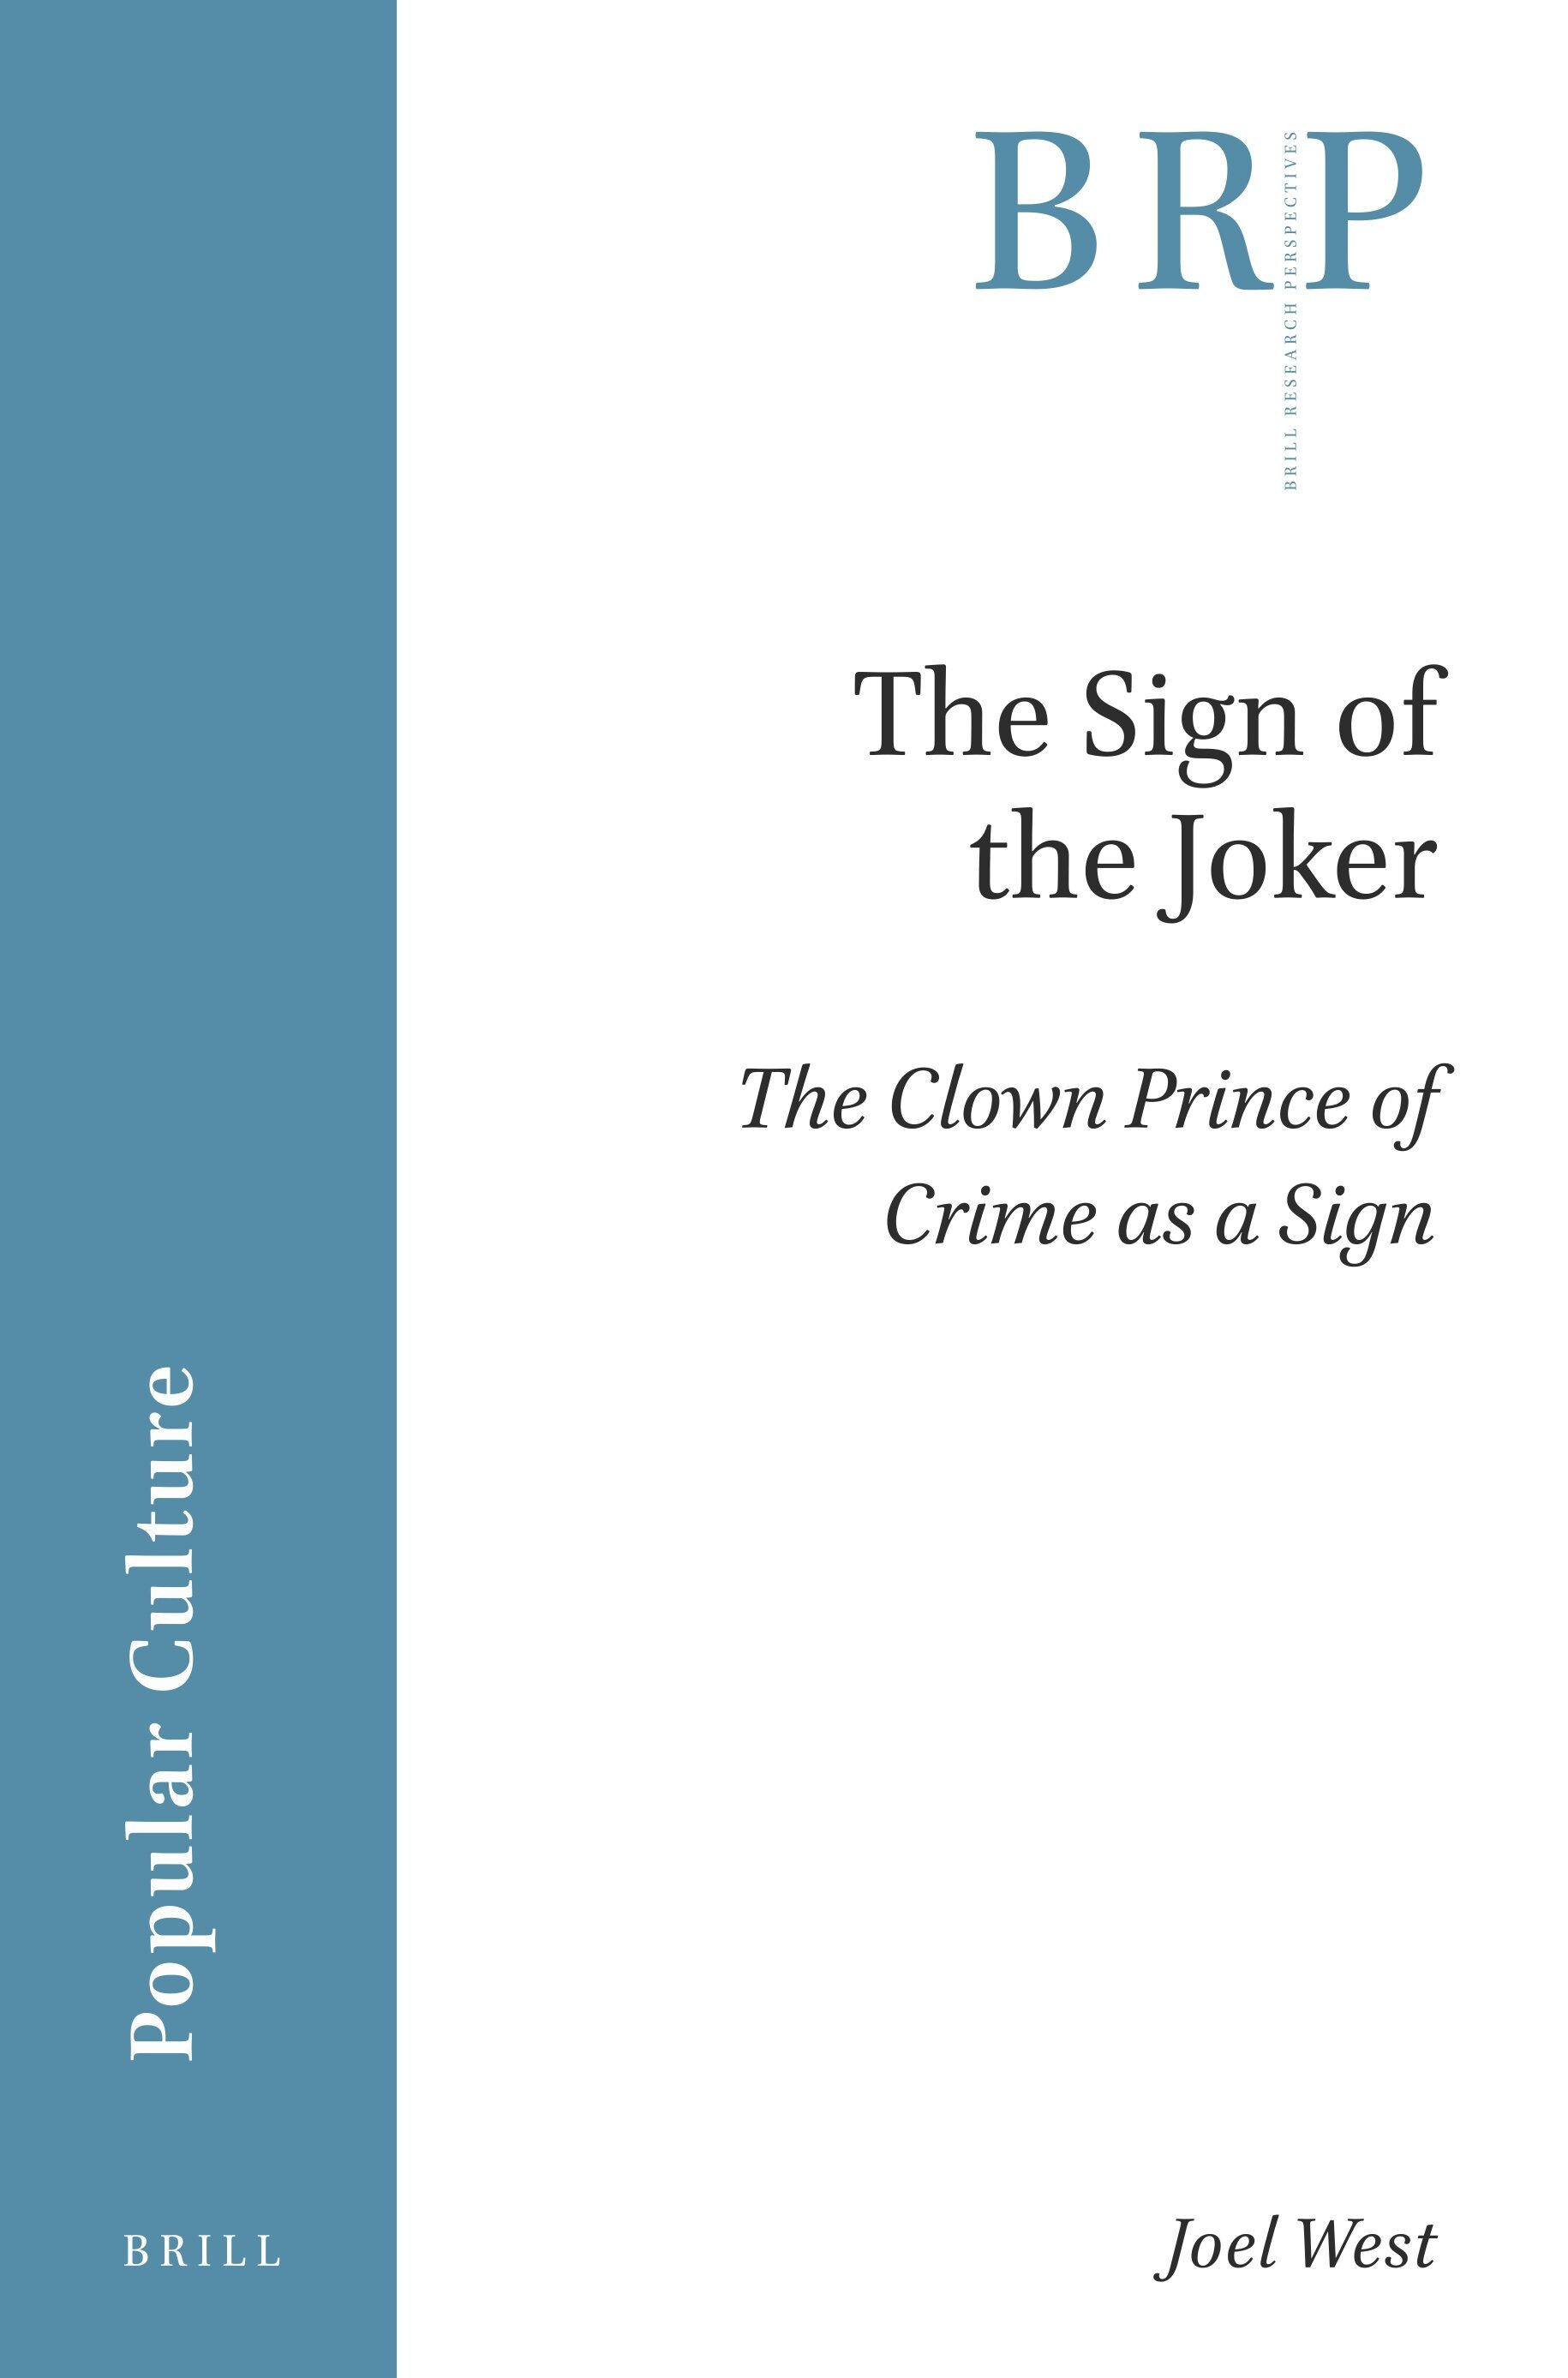 The Sign Of The Joker In The Sign Of The Joker The Clown Prince Of Crime As A Sign